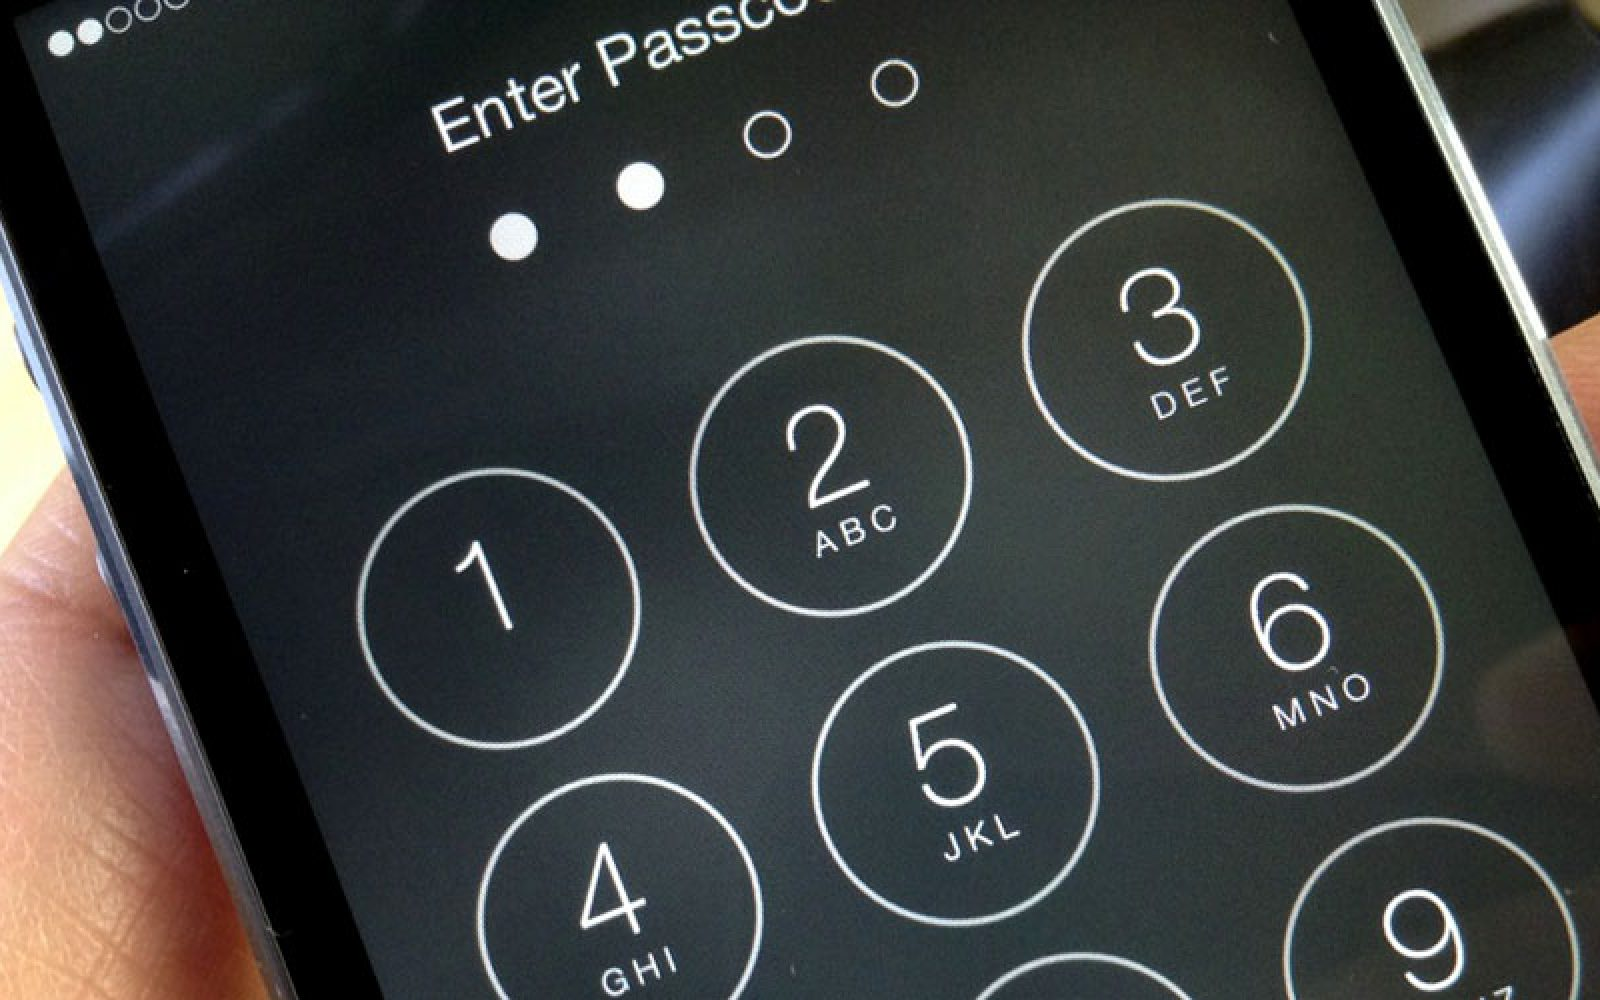 If you're wondering why your iPhone needs your passcode more